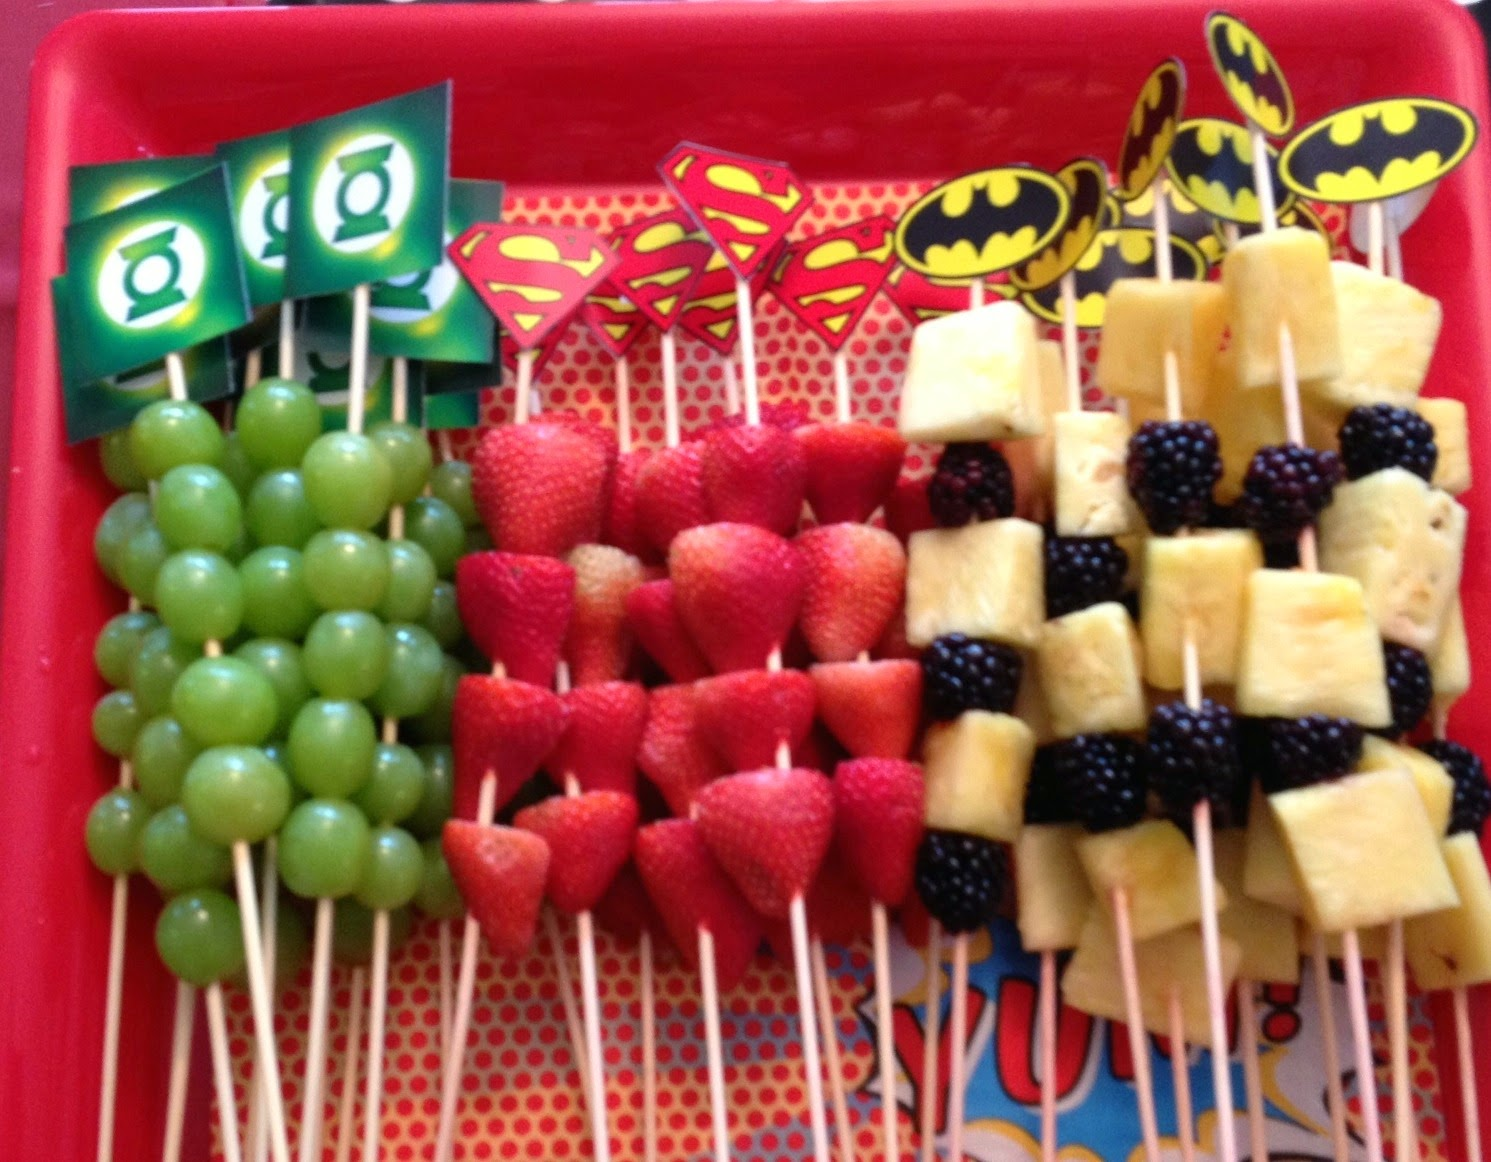 Have You Seen Cuter Fruit Skewers So Adorable And Easy To Assemble